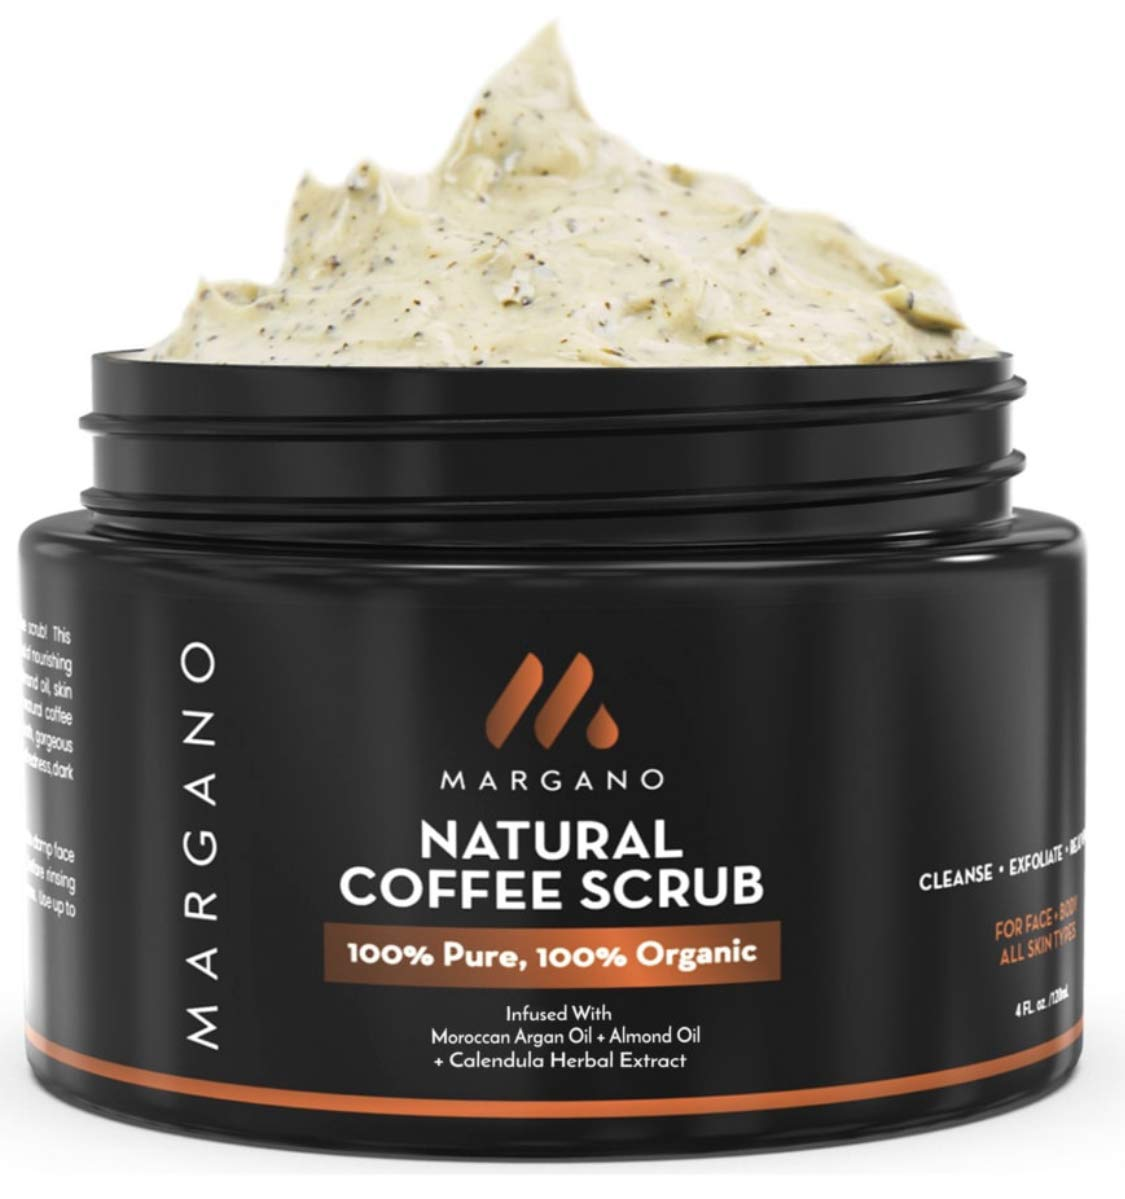 100% Natural Coffee Scrub w/Moroccan Argan Oil + Calendula + Almond Oil + Shea Butter | Ultra hydrating & Soothing. Anti Acne Face Exfoliant. Black heads, Acne Scars. Excellent Body Scrub + Face Scrub by MARGANO